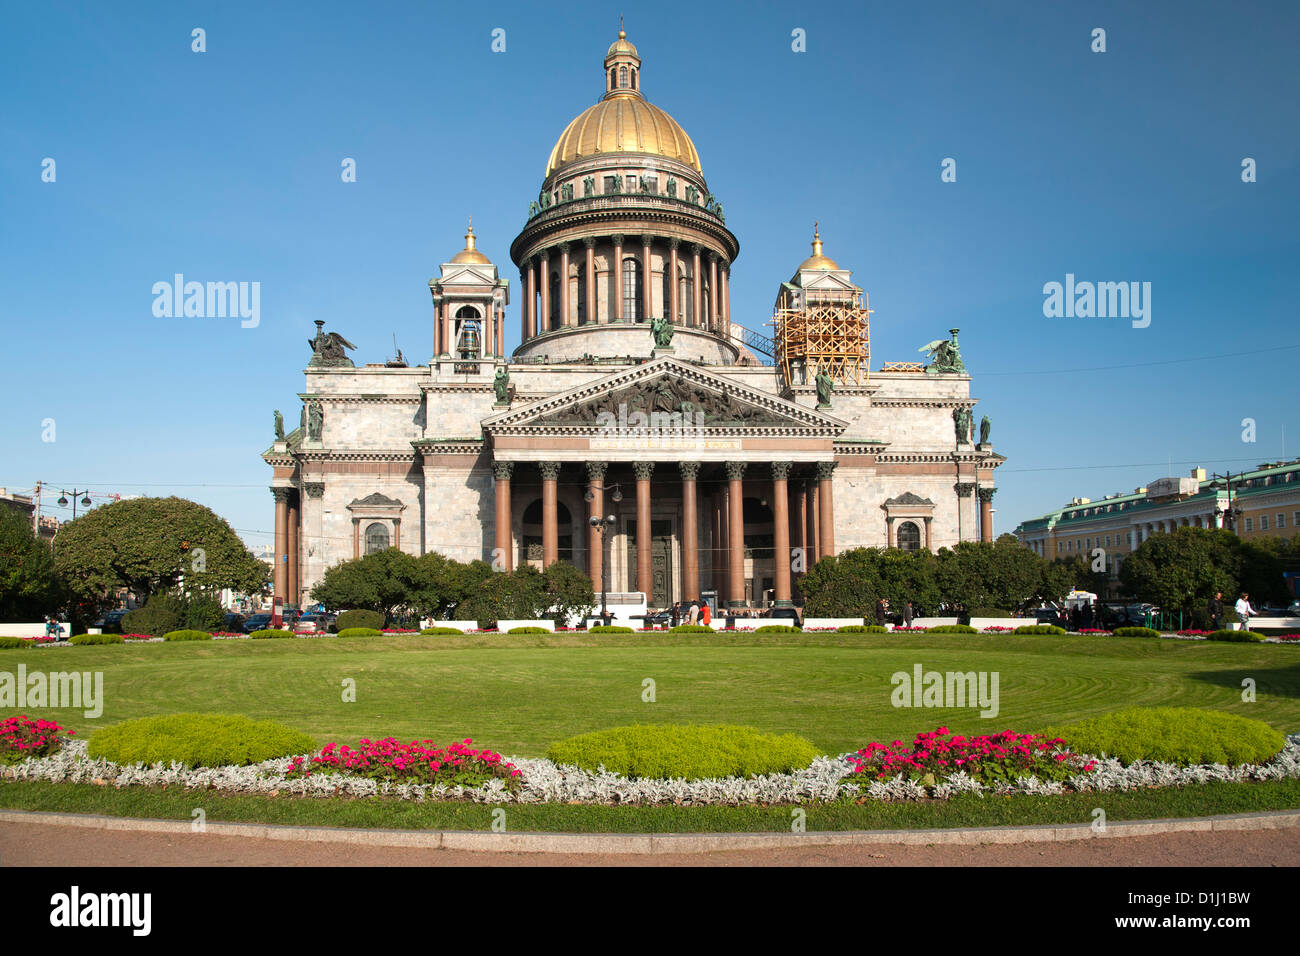 St Isaac's Cathedral in Saint Petersburg, Russia. Stock Photo